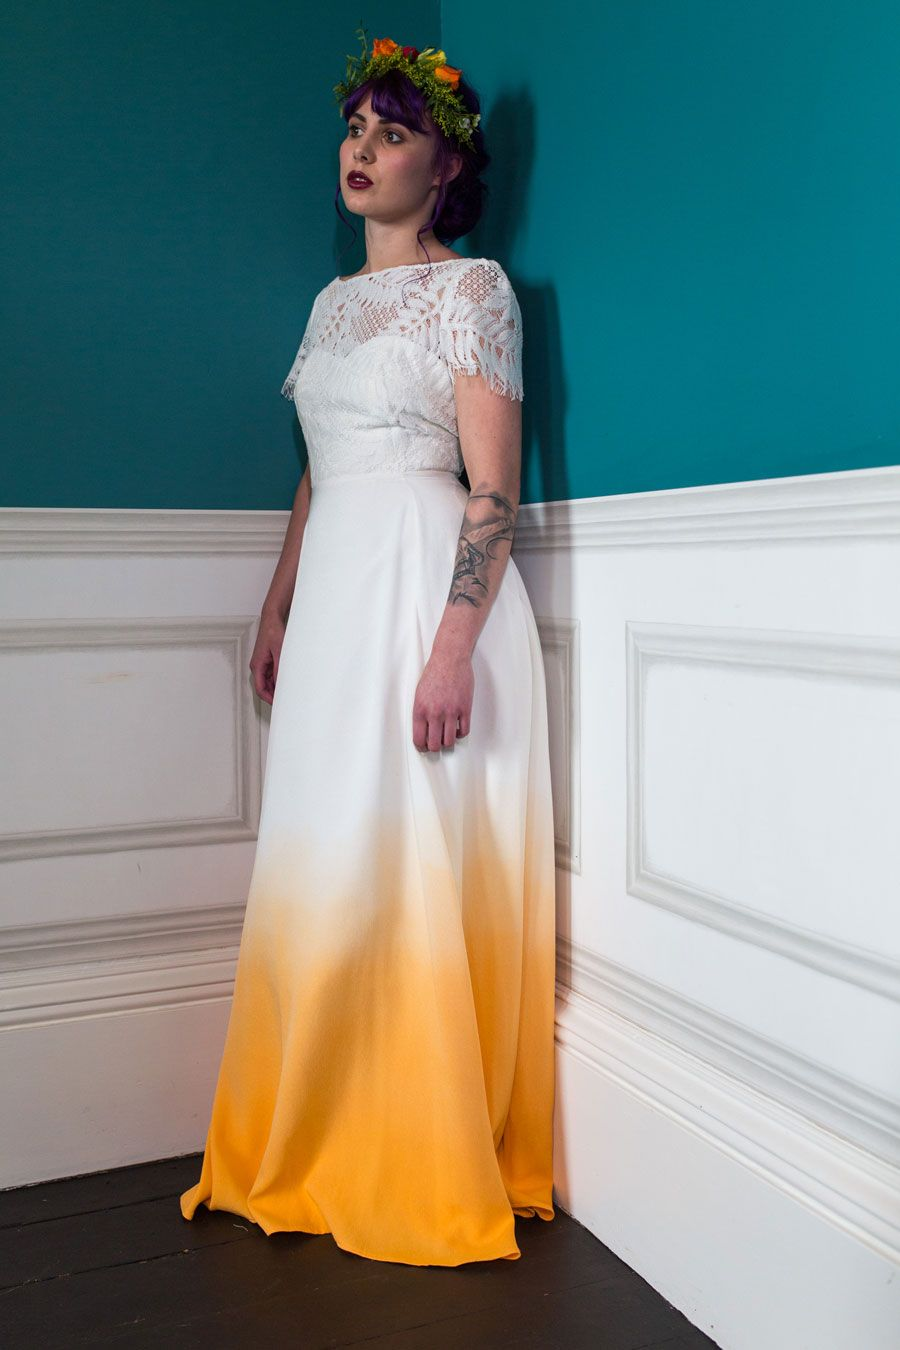 Colourful quirky wedding dresses for nontraditional